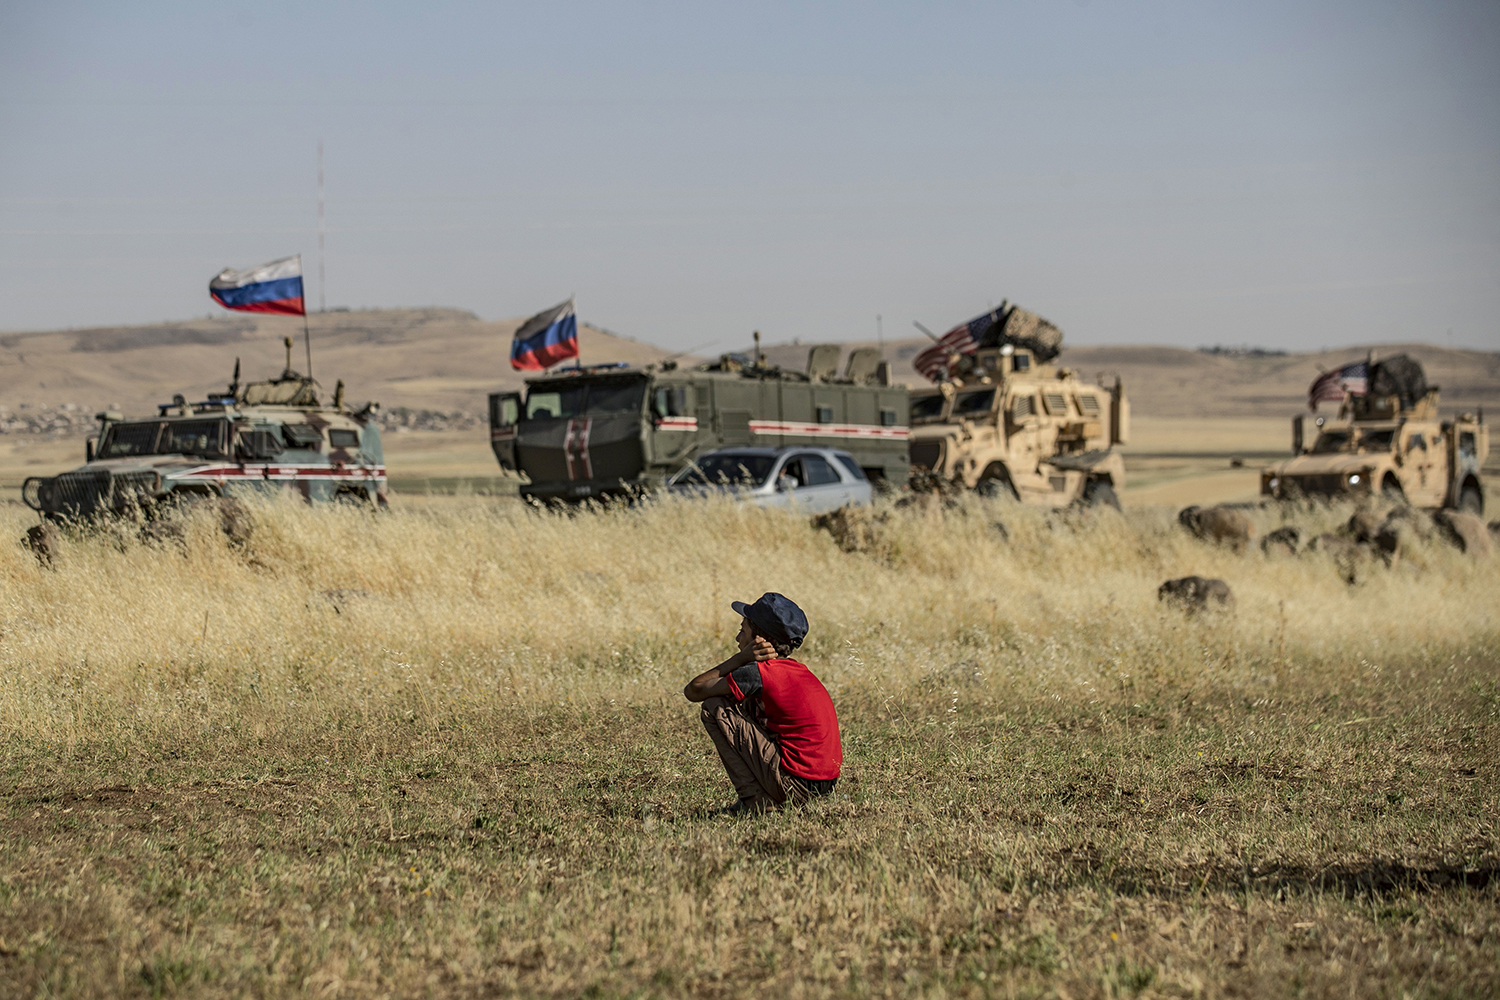 A Syrian boy looks at Russian and U.S. military vehicles in the northeastern Syrian town of al-Malikiyah at the border with Turkey on June 3. DELIL SOULEIMAN/AFP via Getty Images